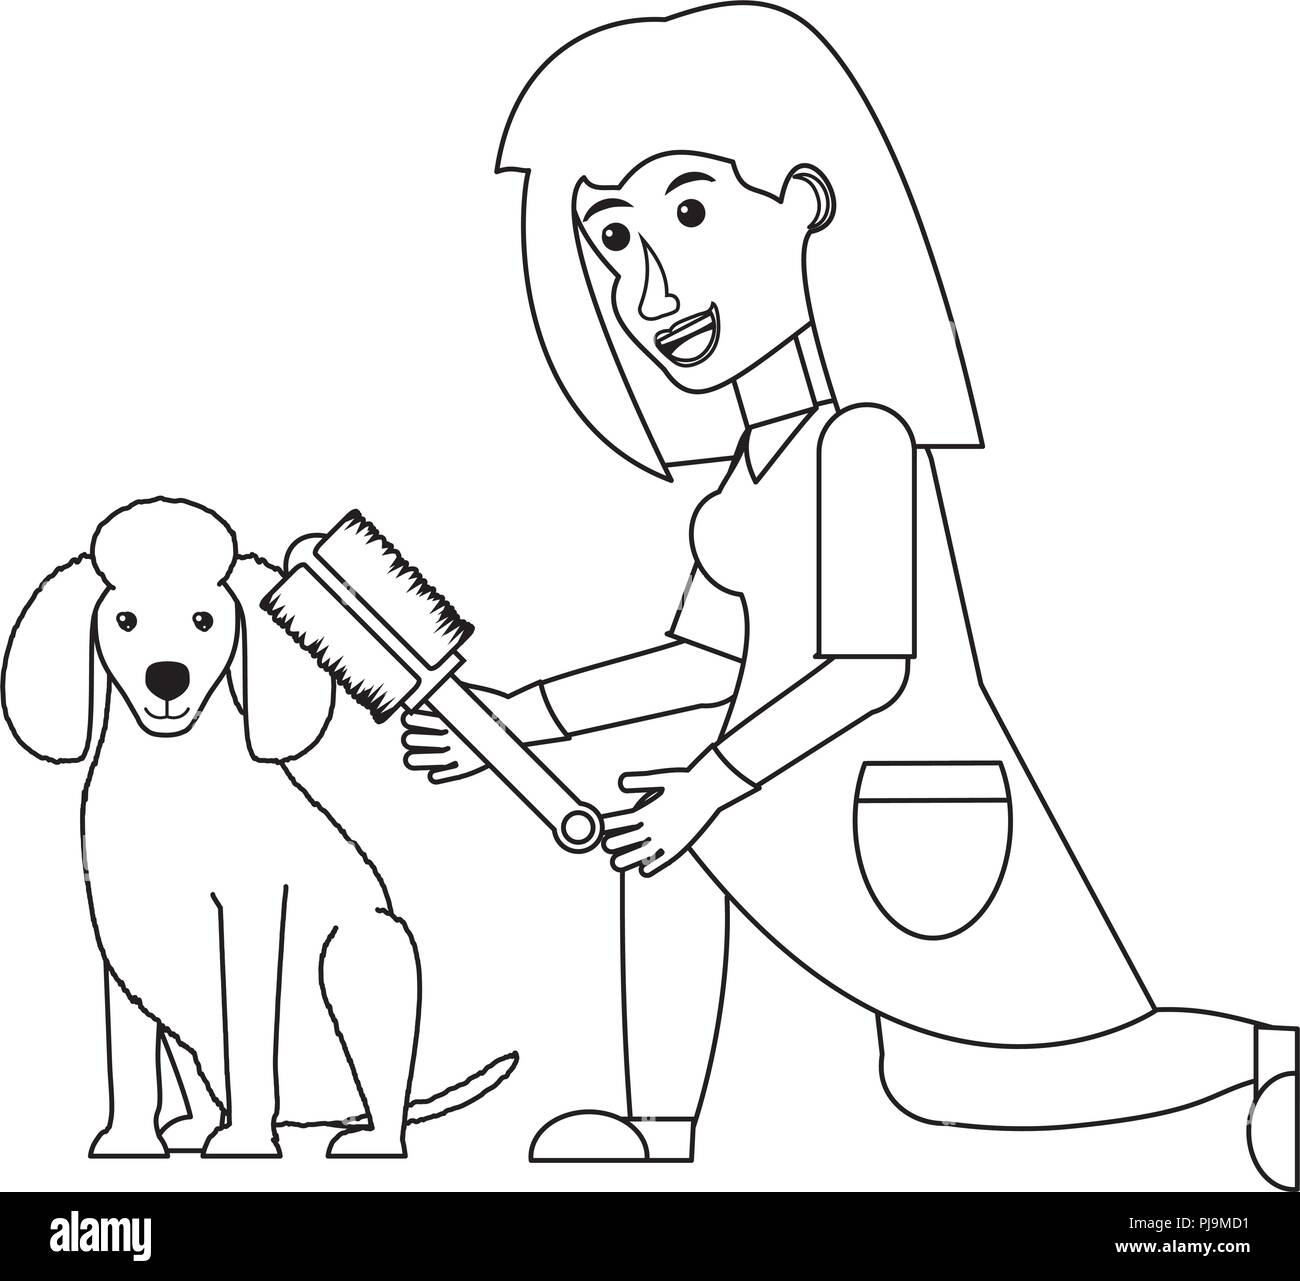 cartoon vet examining a cute poodle dog over white background, vector illustration - Stock Vector